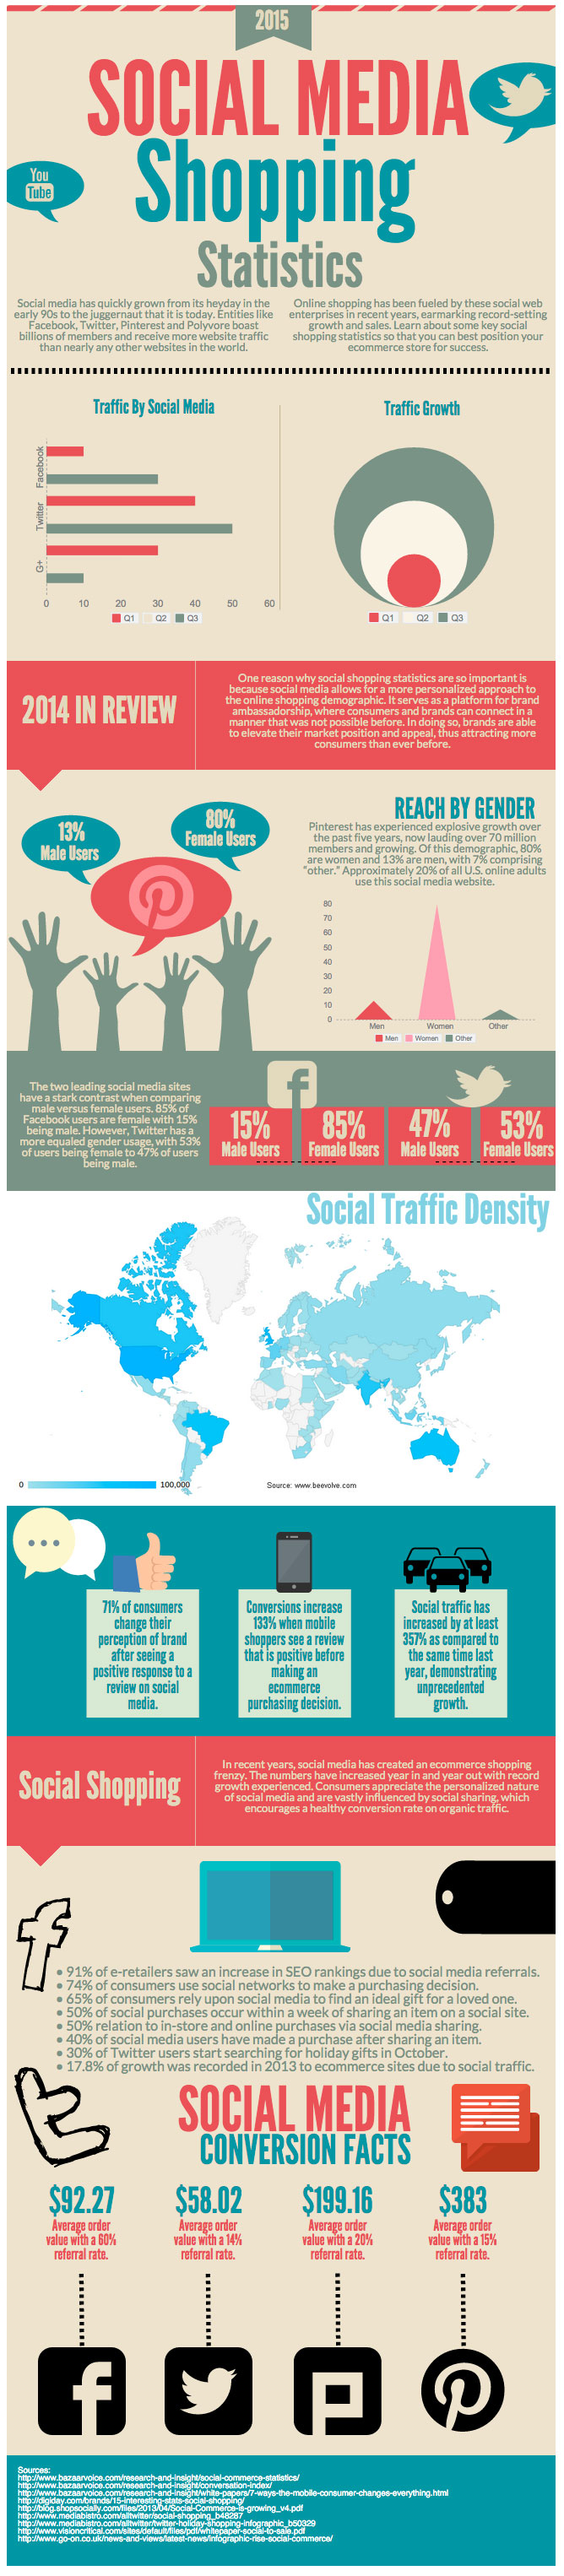 Social Commerce in 2015 - Infographic